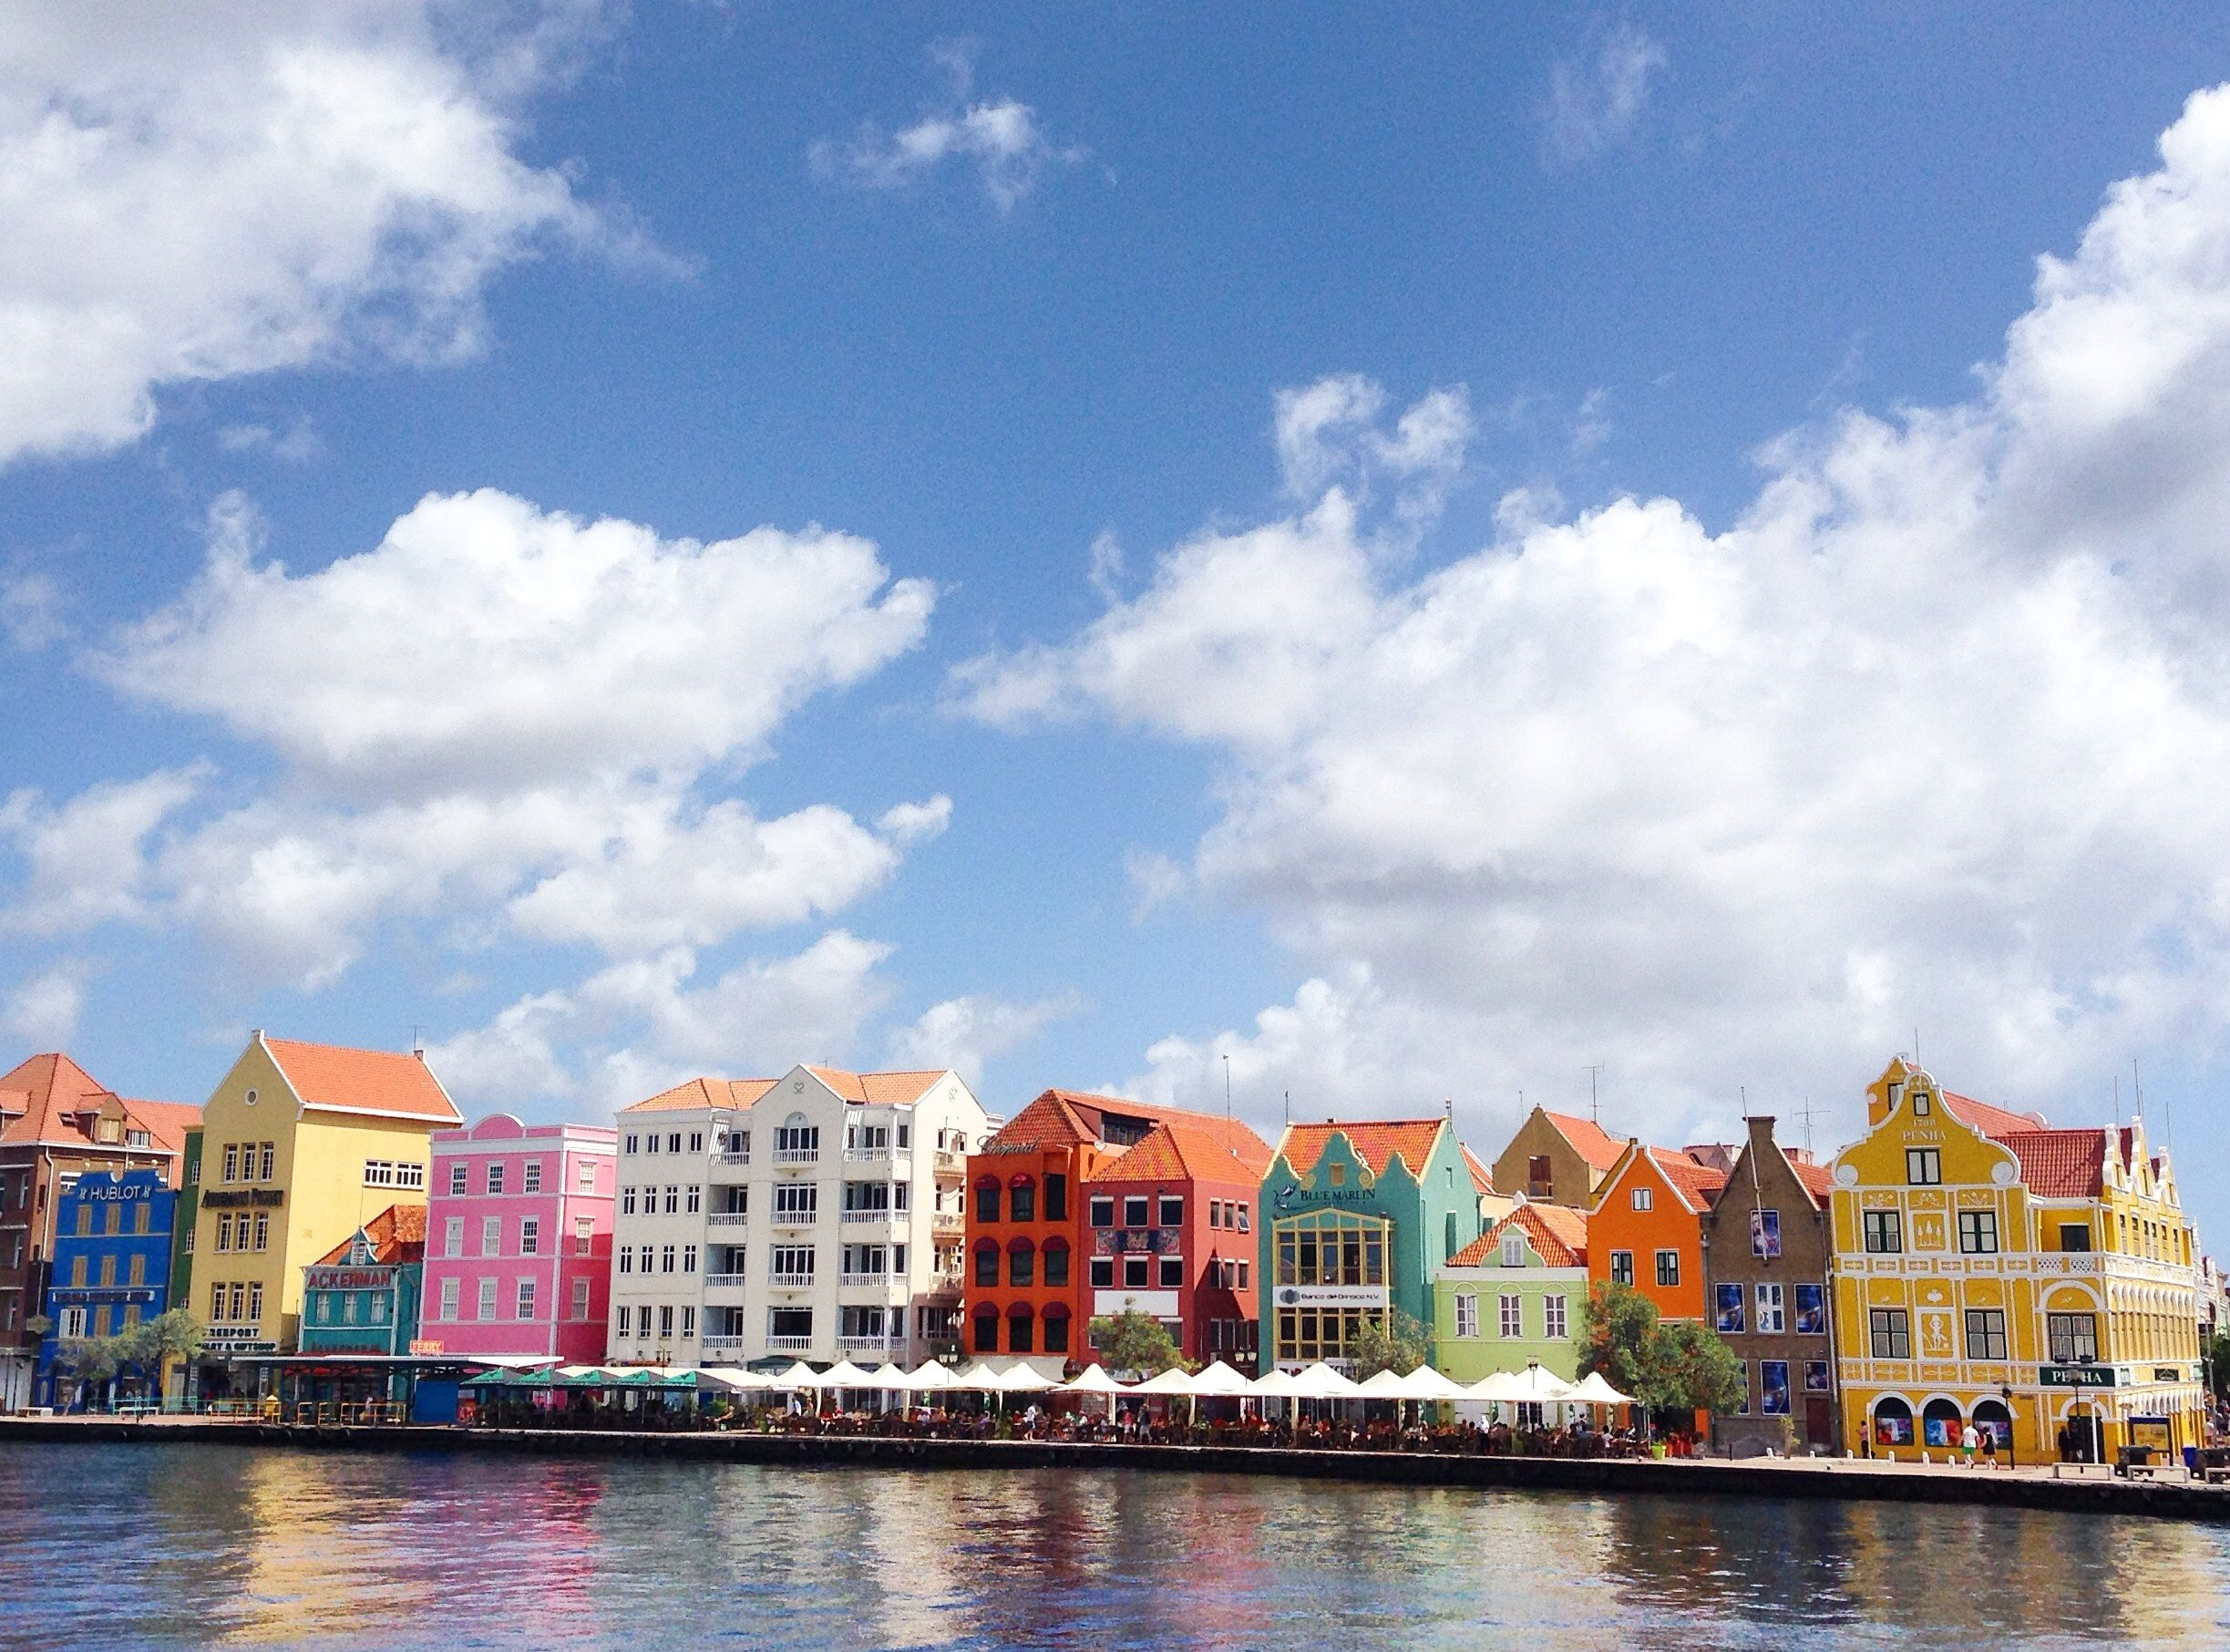 The island of Curaçao, in the Southern Caribbean, is a little slice of paradise. Thinkjaw-dropping beaches, crystal clear waters, colourful architecture and gorgeous weather...